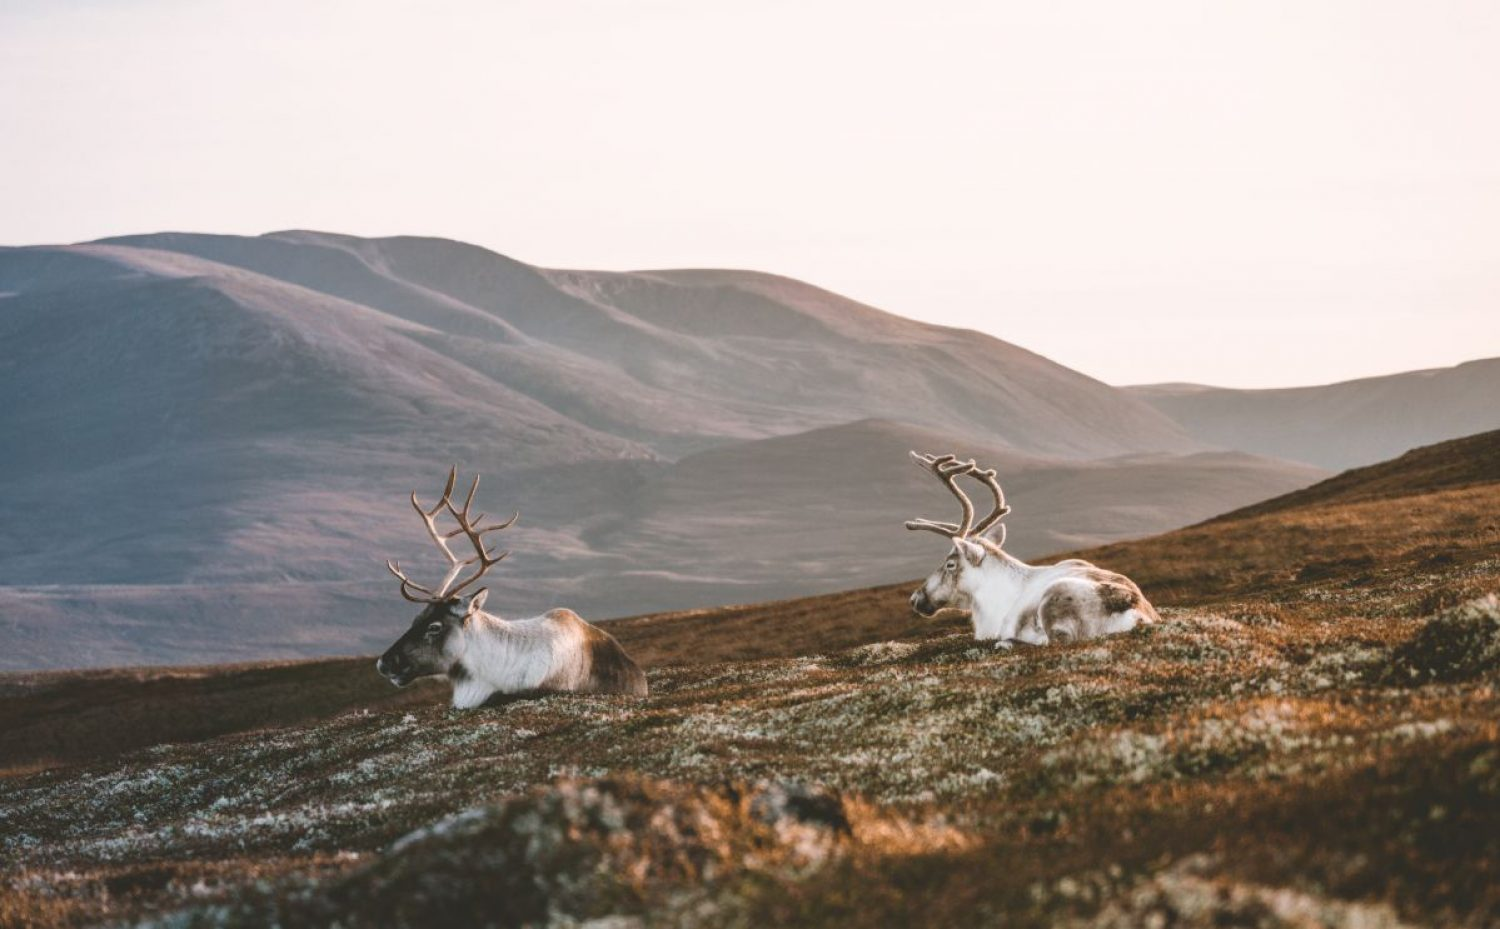 Reindeer were introduced to the Cairngorms in 1952